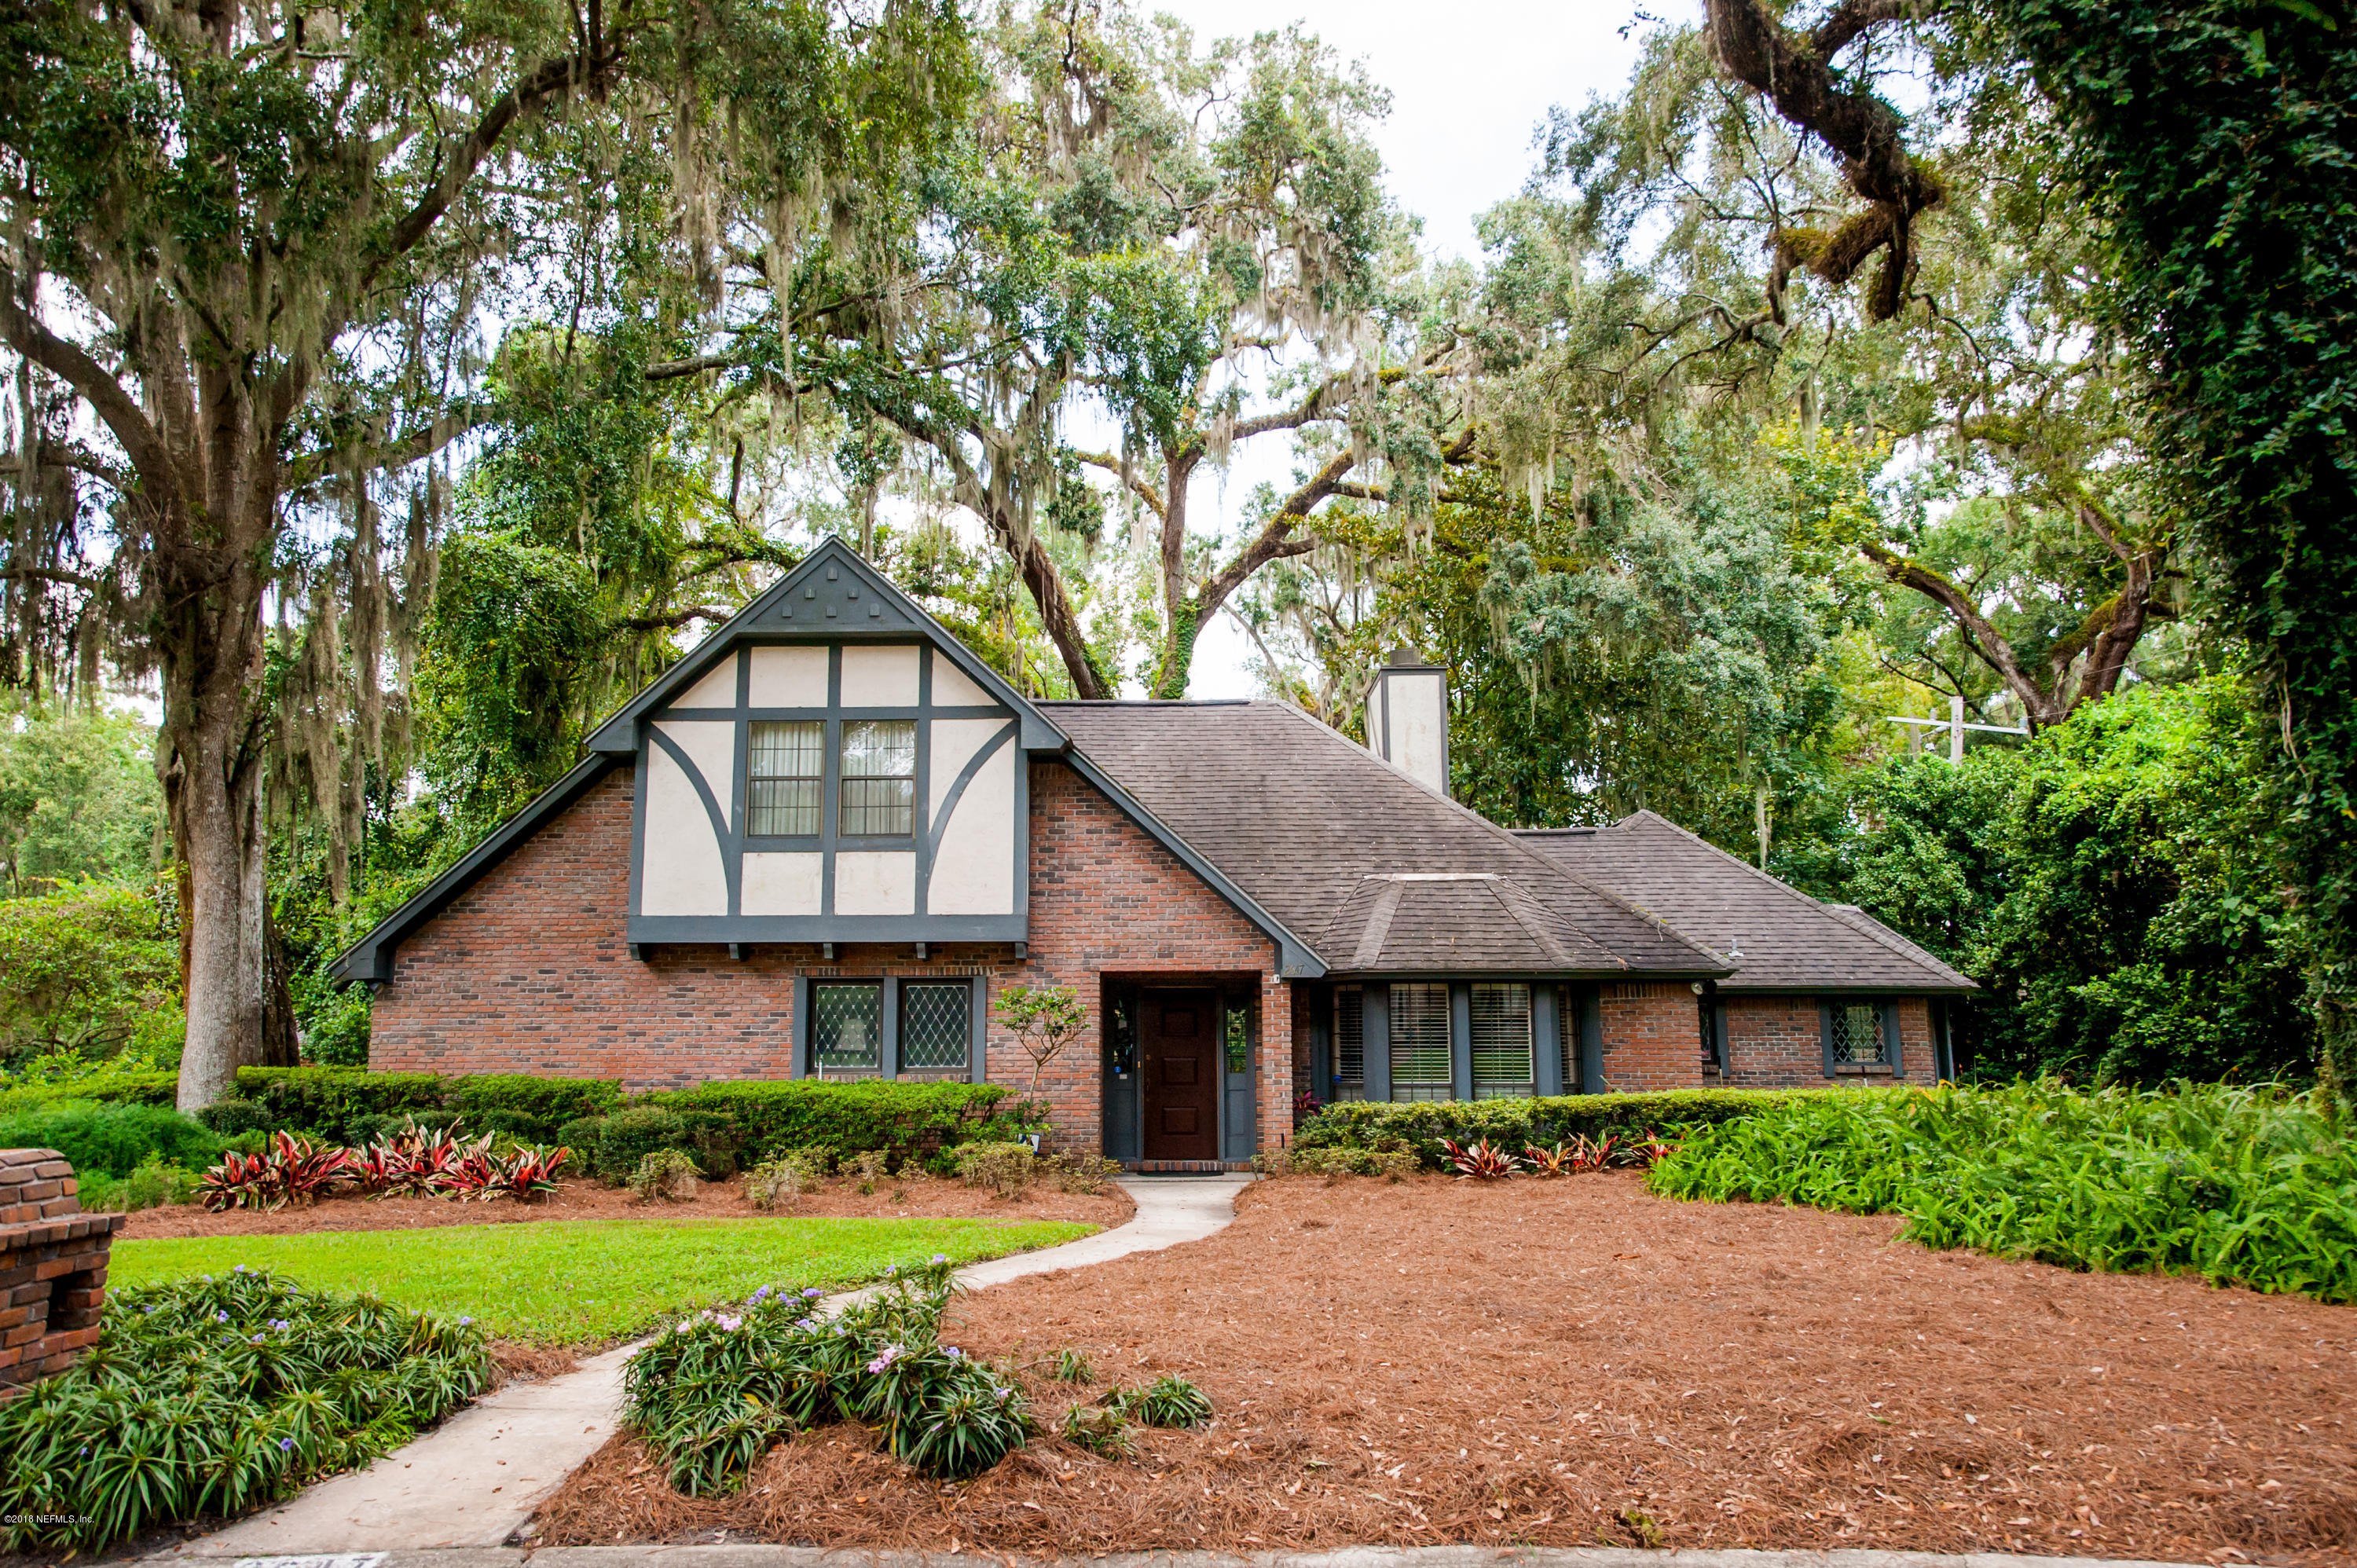 2647 FOREST POINT, JACKSONVILLE, FLORIDA 32257, 4 Bedrooms Bedrooms, ,3 BathroomsBathrooms,Residential - single family,For sale,FOREST POINT,953432